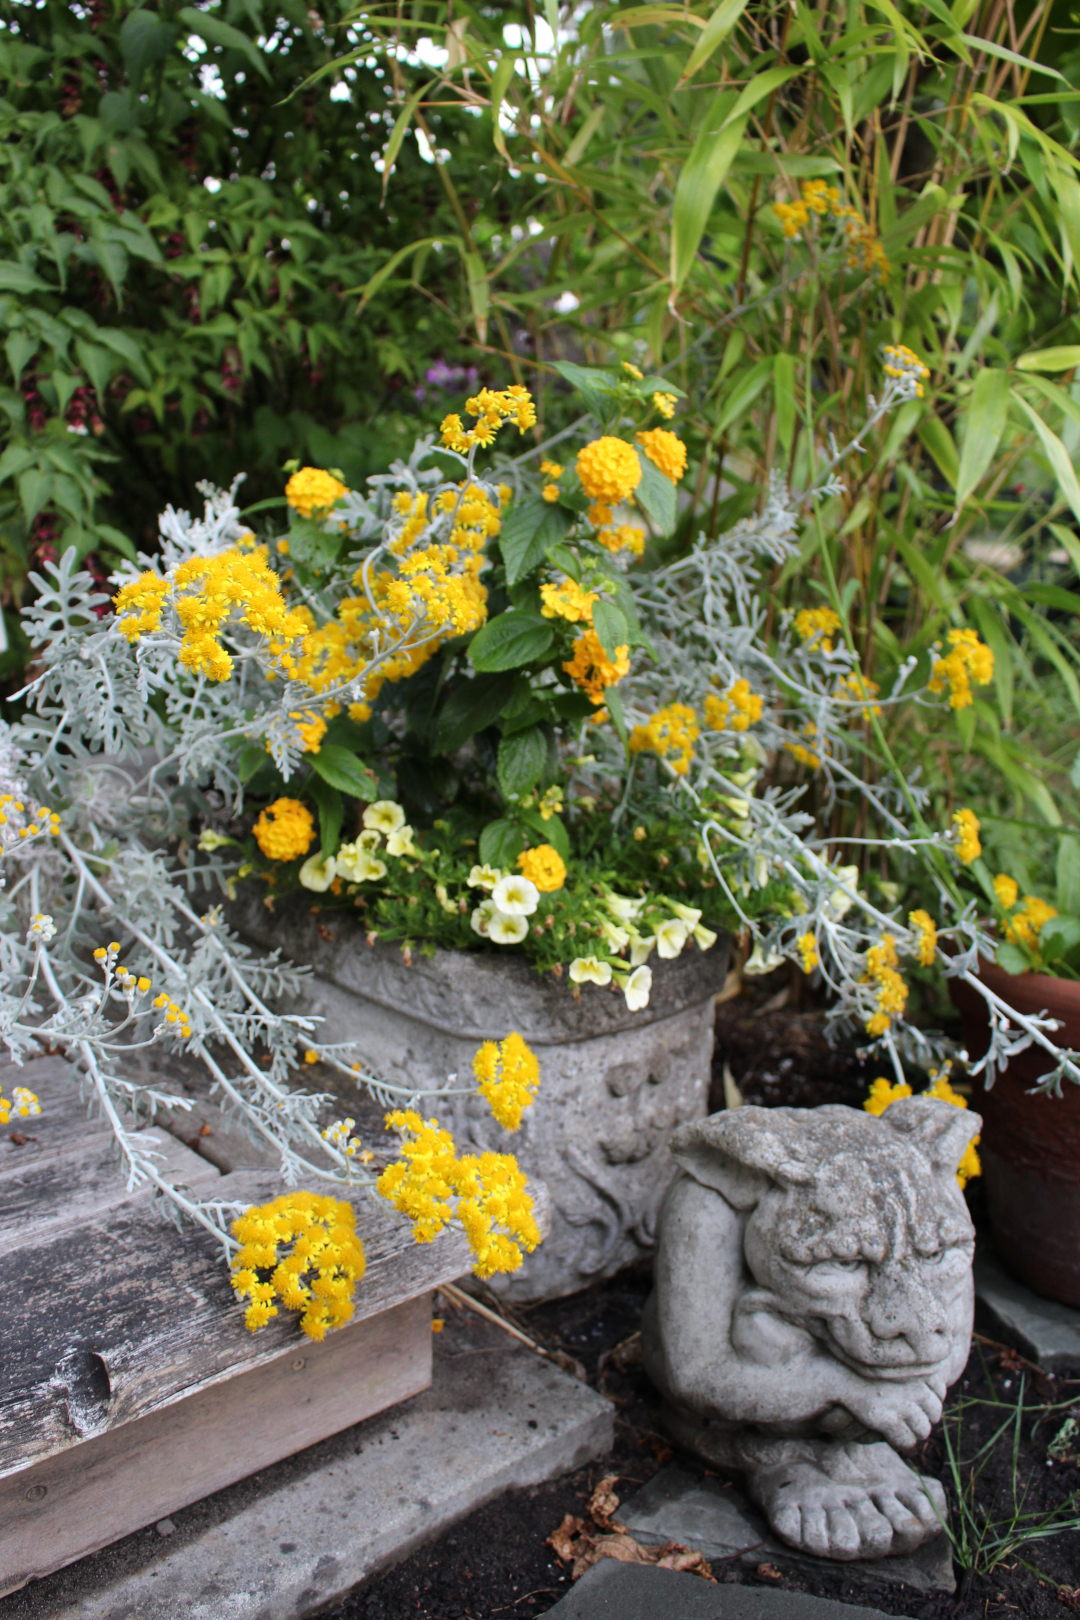 gargoyle statue next to yellow plant in a container